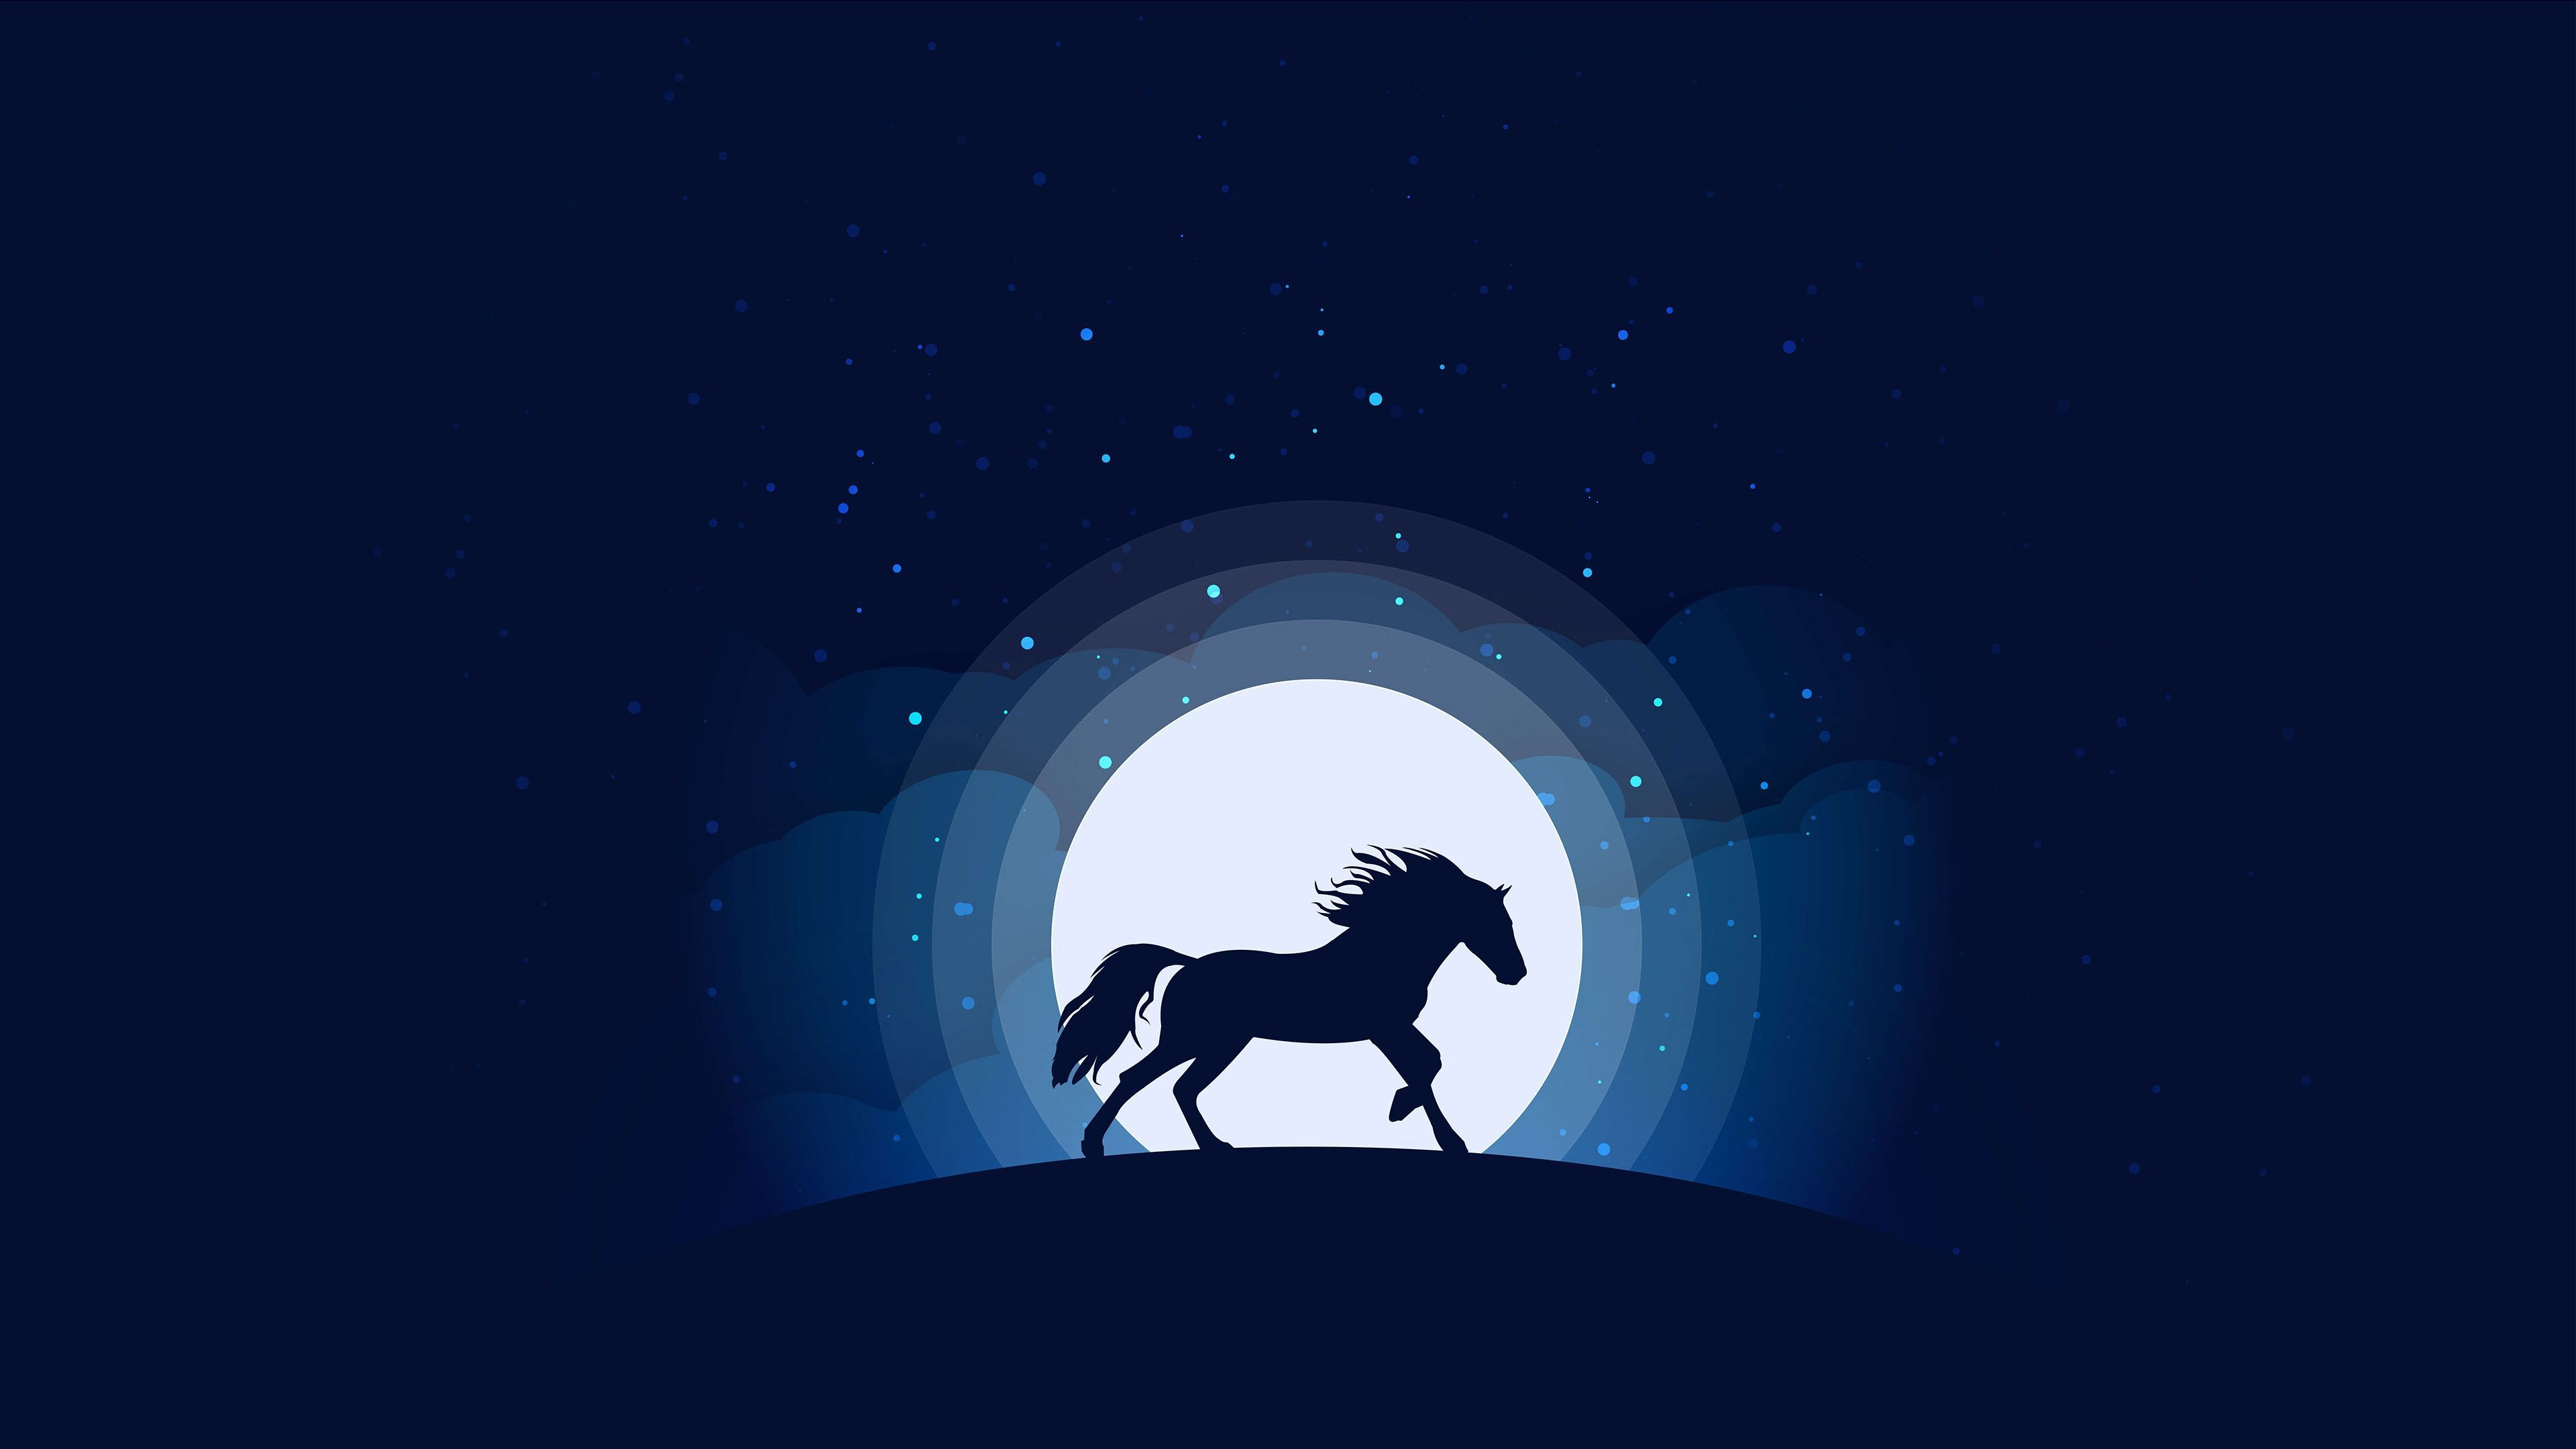 Minimalist Horse Wallpapers Top Free Minimalist Horse Backgrounds Wallpaperaccess